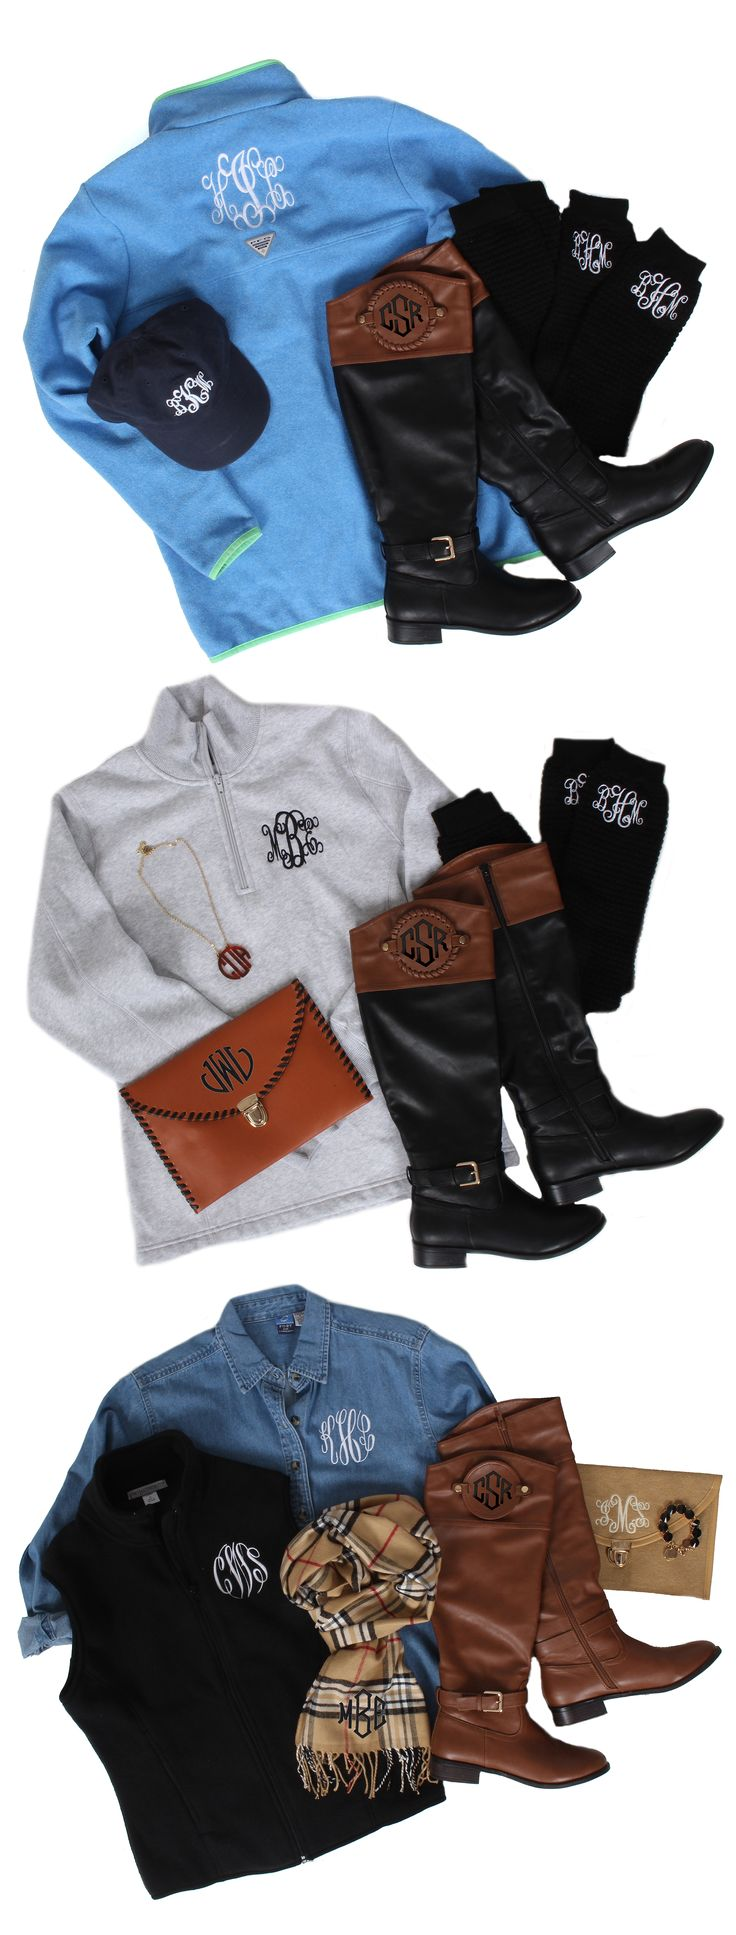 Favorite Fall Outfits from Marleylilly.com!